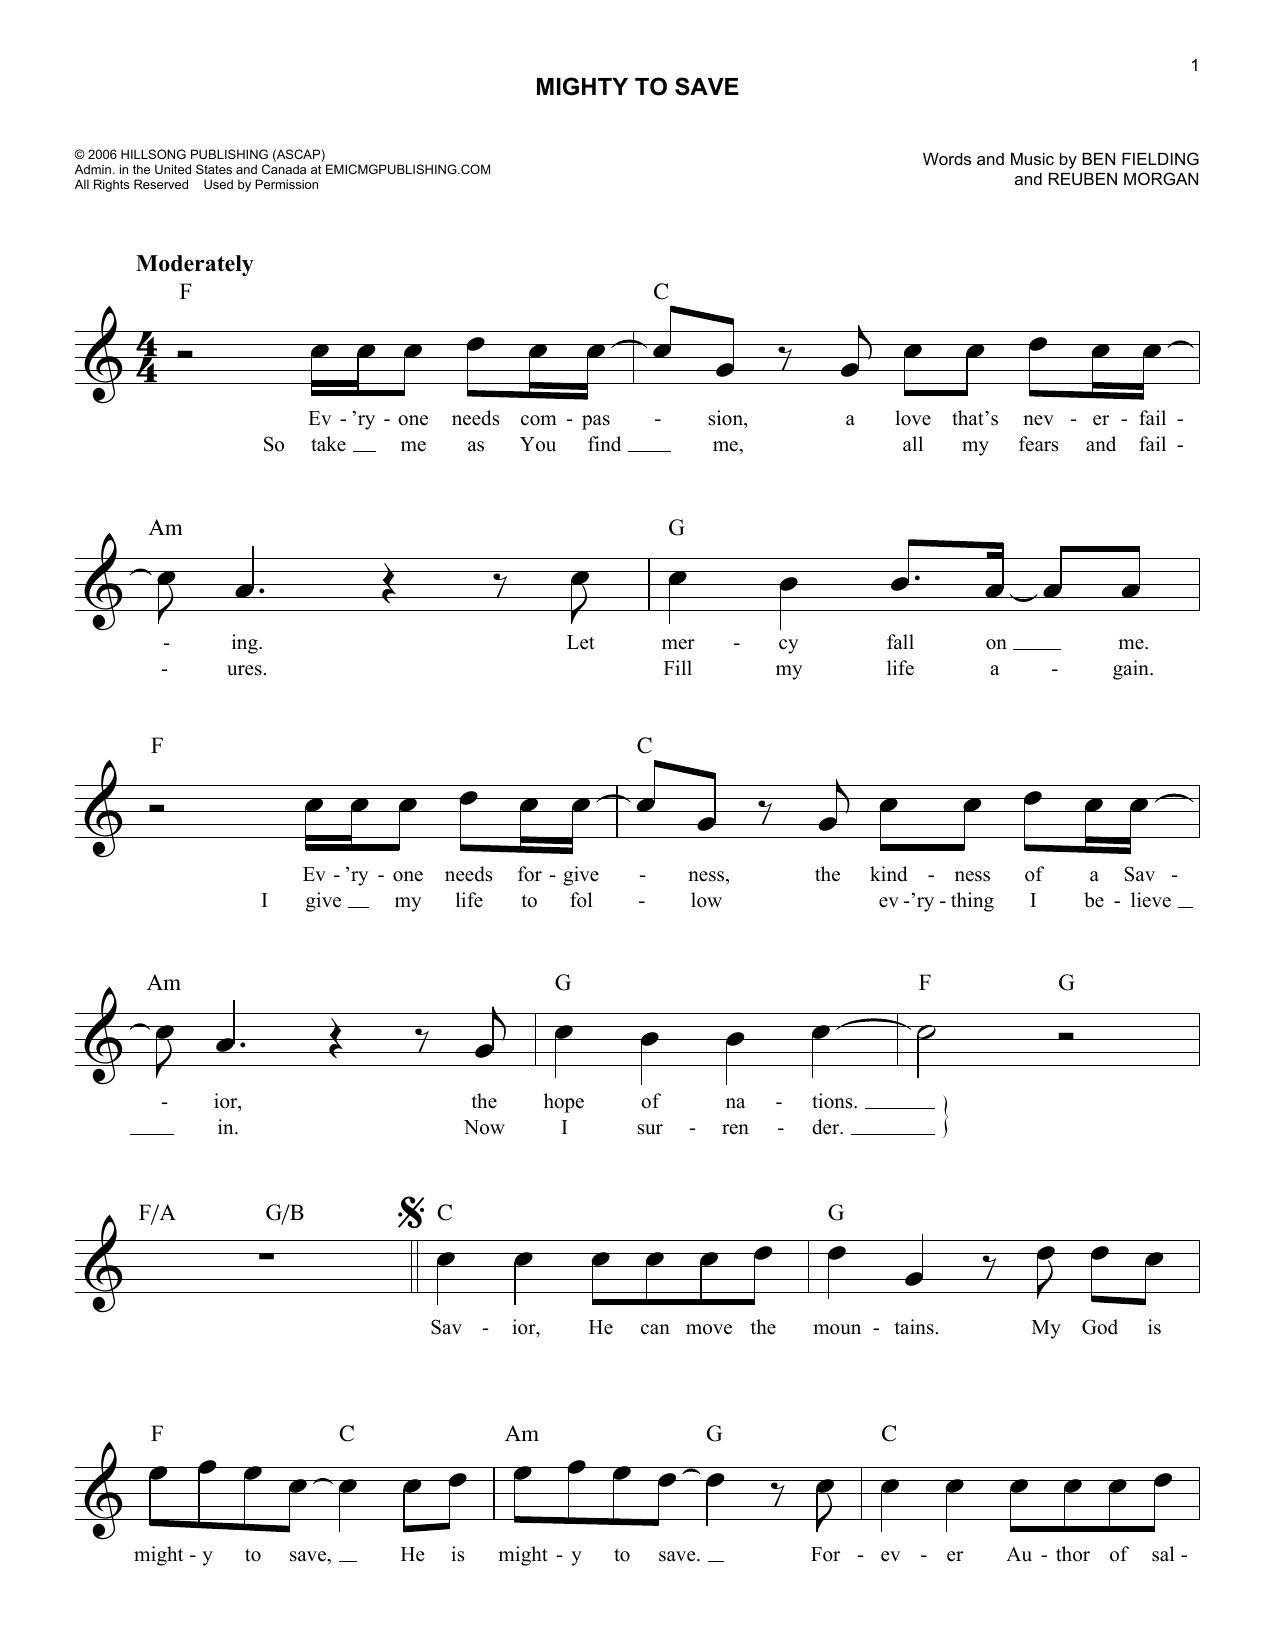 Pin by Beth Cain on Bible Class in 2020 | Gospel song lyrics